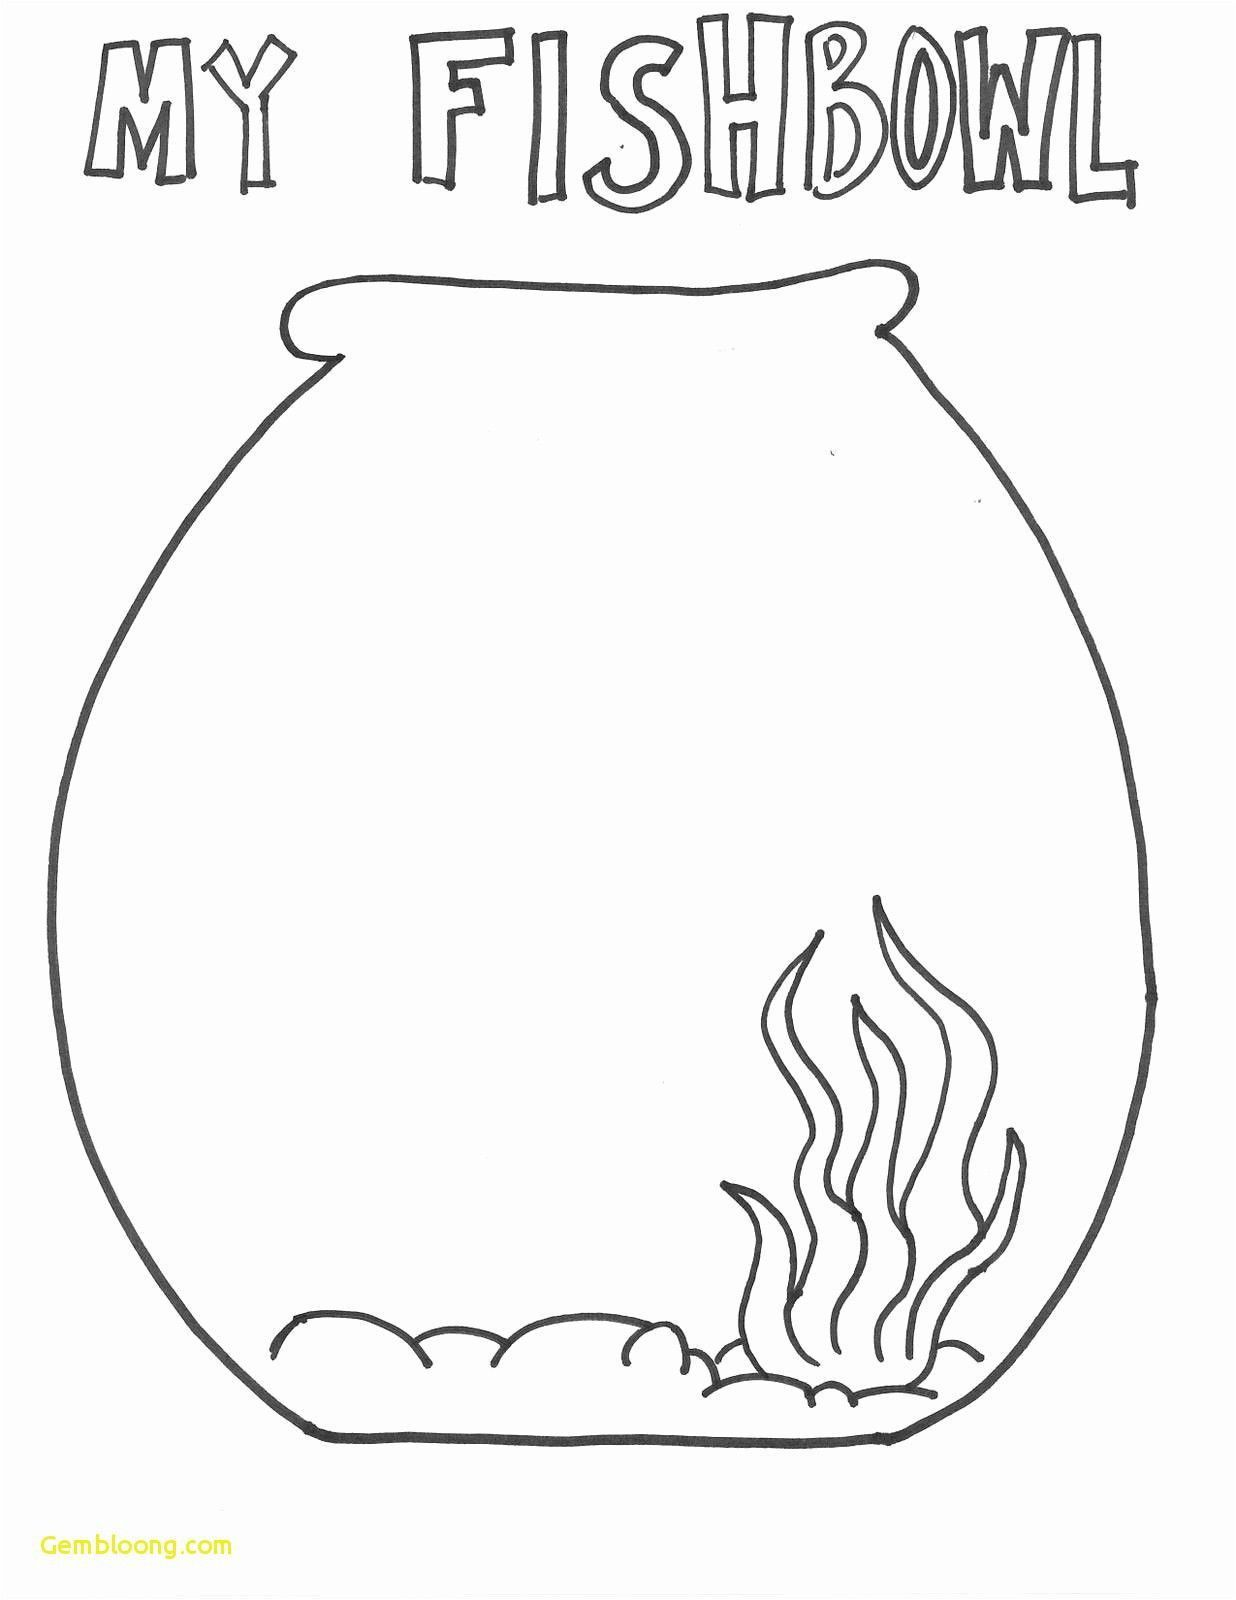 Fish Bowl Coloring Page Youngandtae Com In 2020 Fish Coloring Page Fish Bowl Rainbow Fish